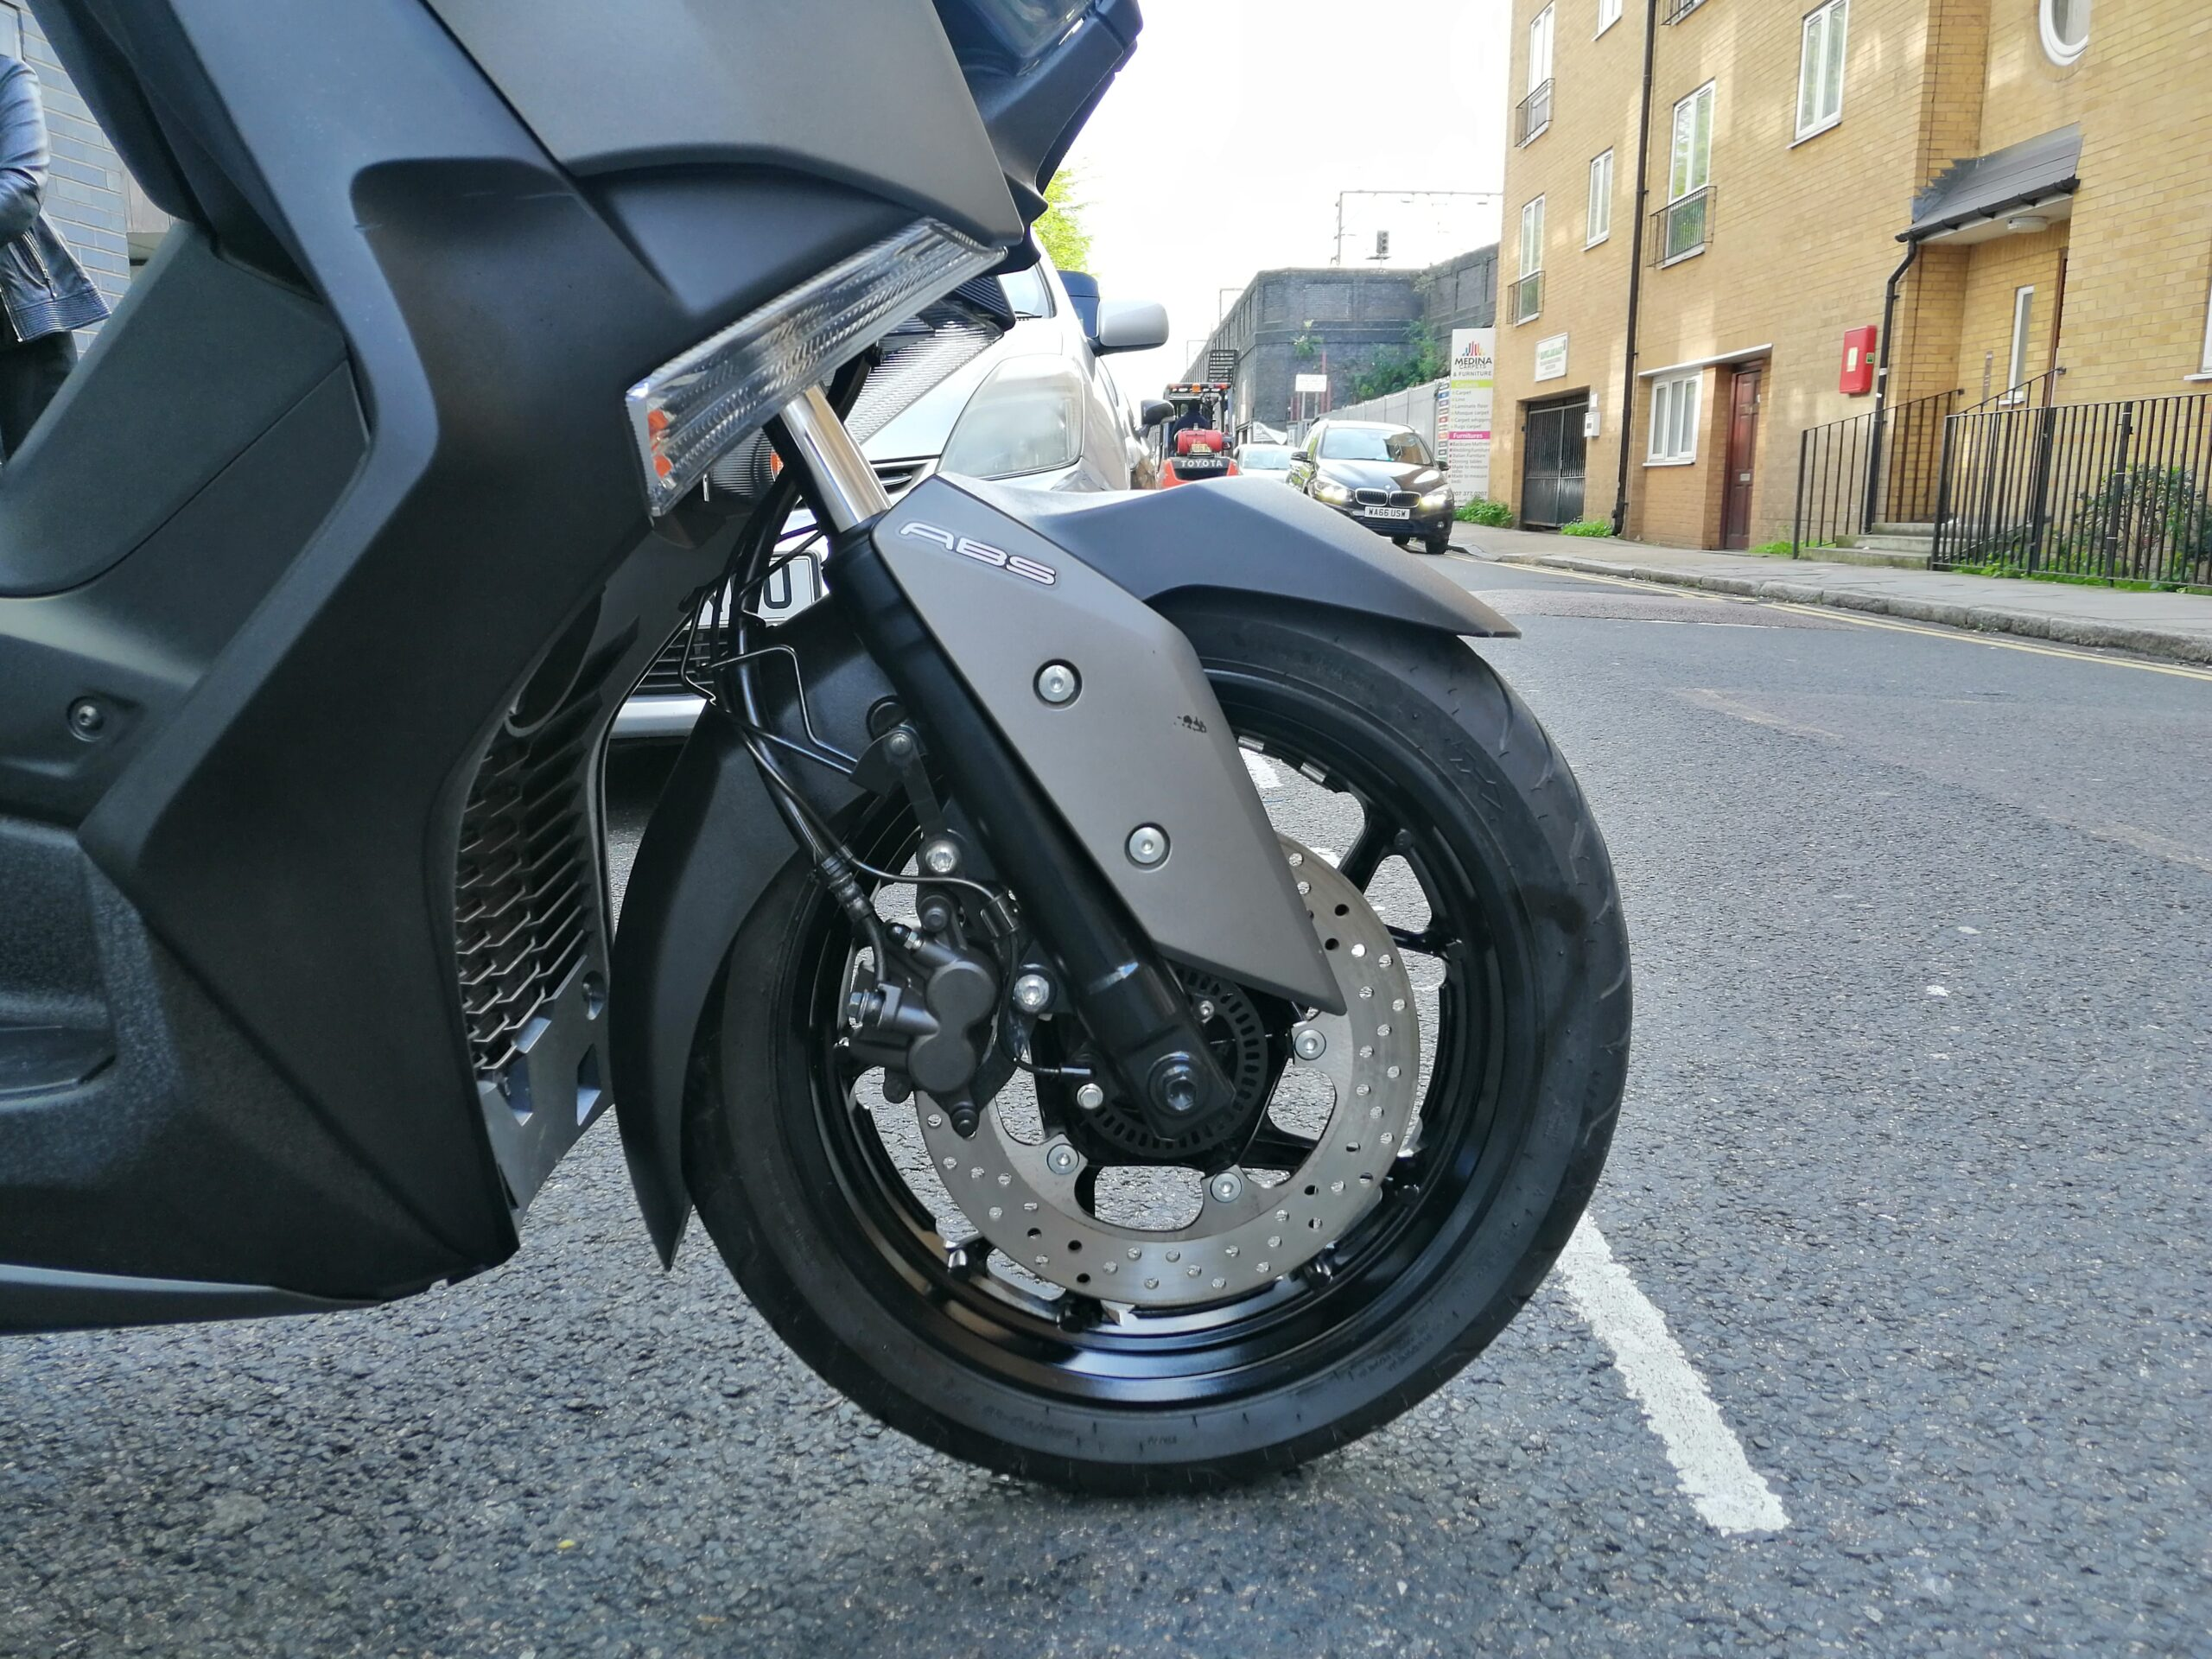 Yamaha X Max 300, Immaculate condition with 1685 miles